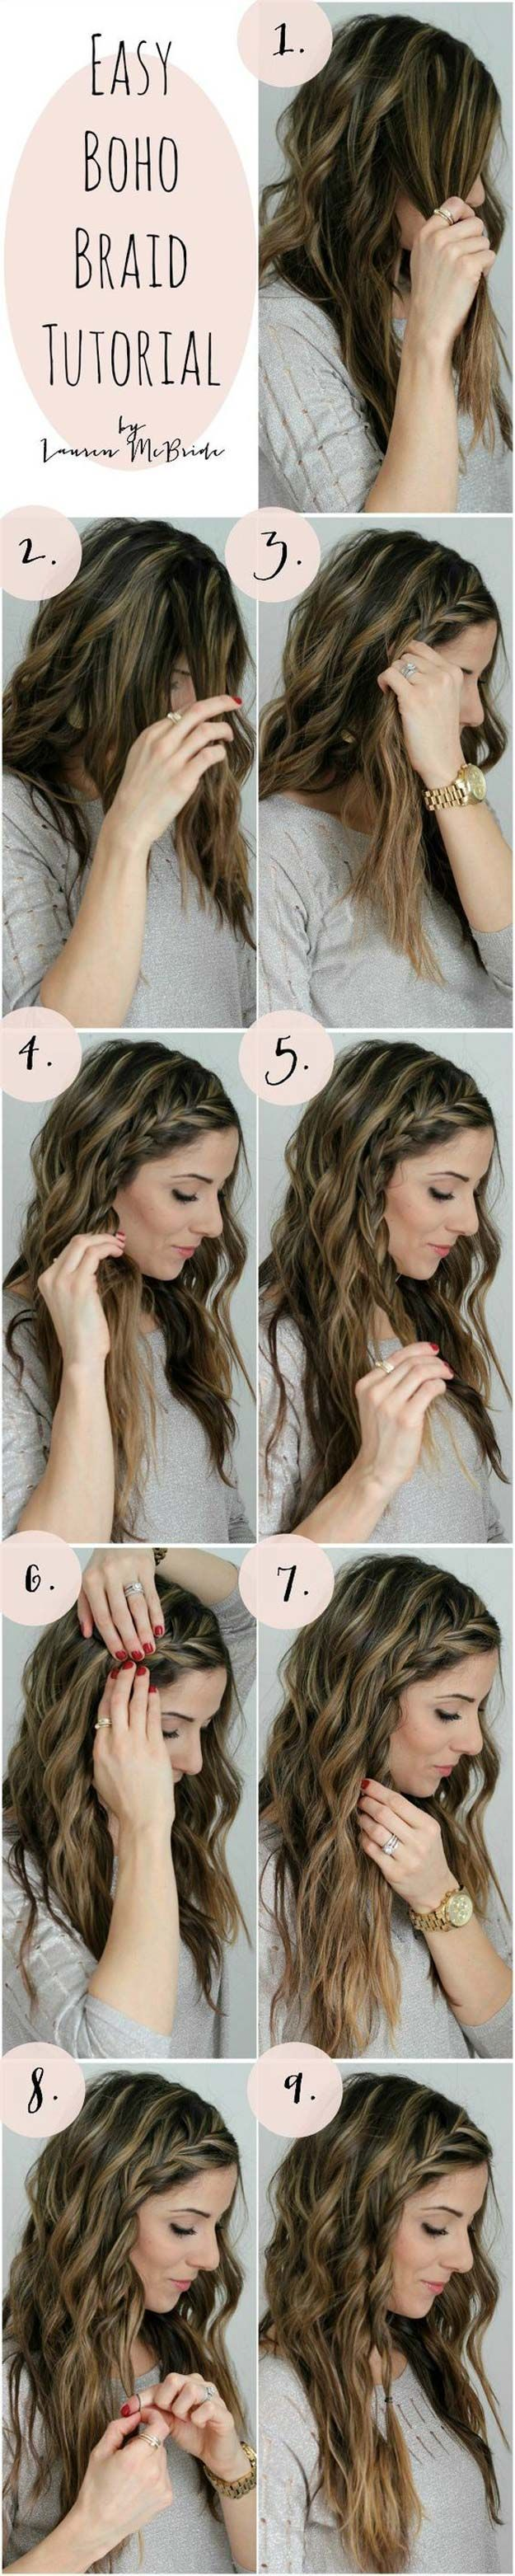 Best 25 Cool hairstyles for school ideas on Pinterest